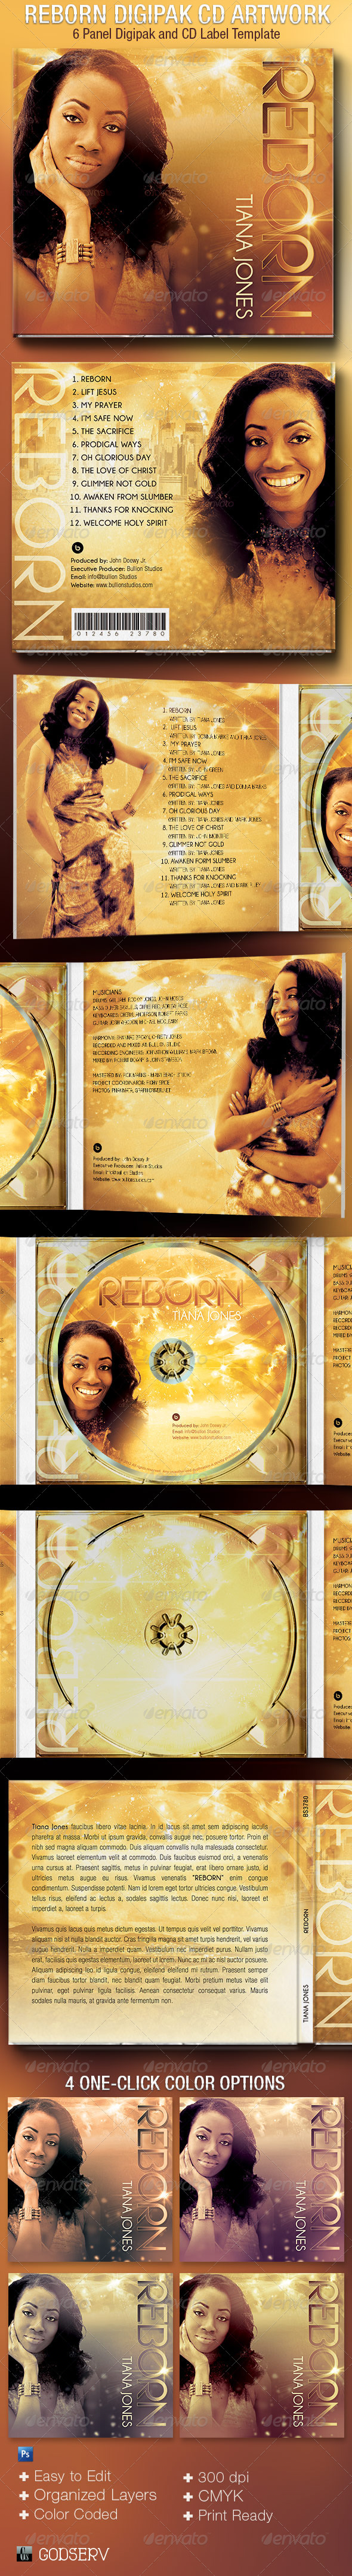 Reborn 6 Panel Digipak CD Artwork Template - CD & DVD Artwork Print Templates